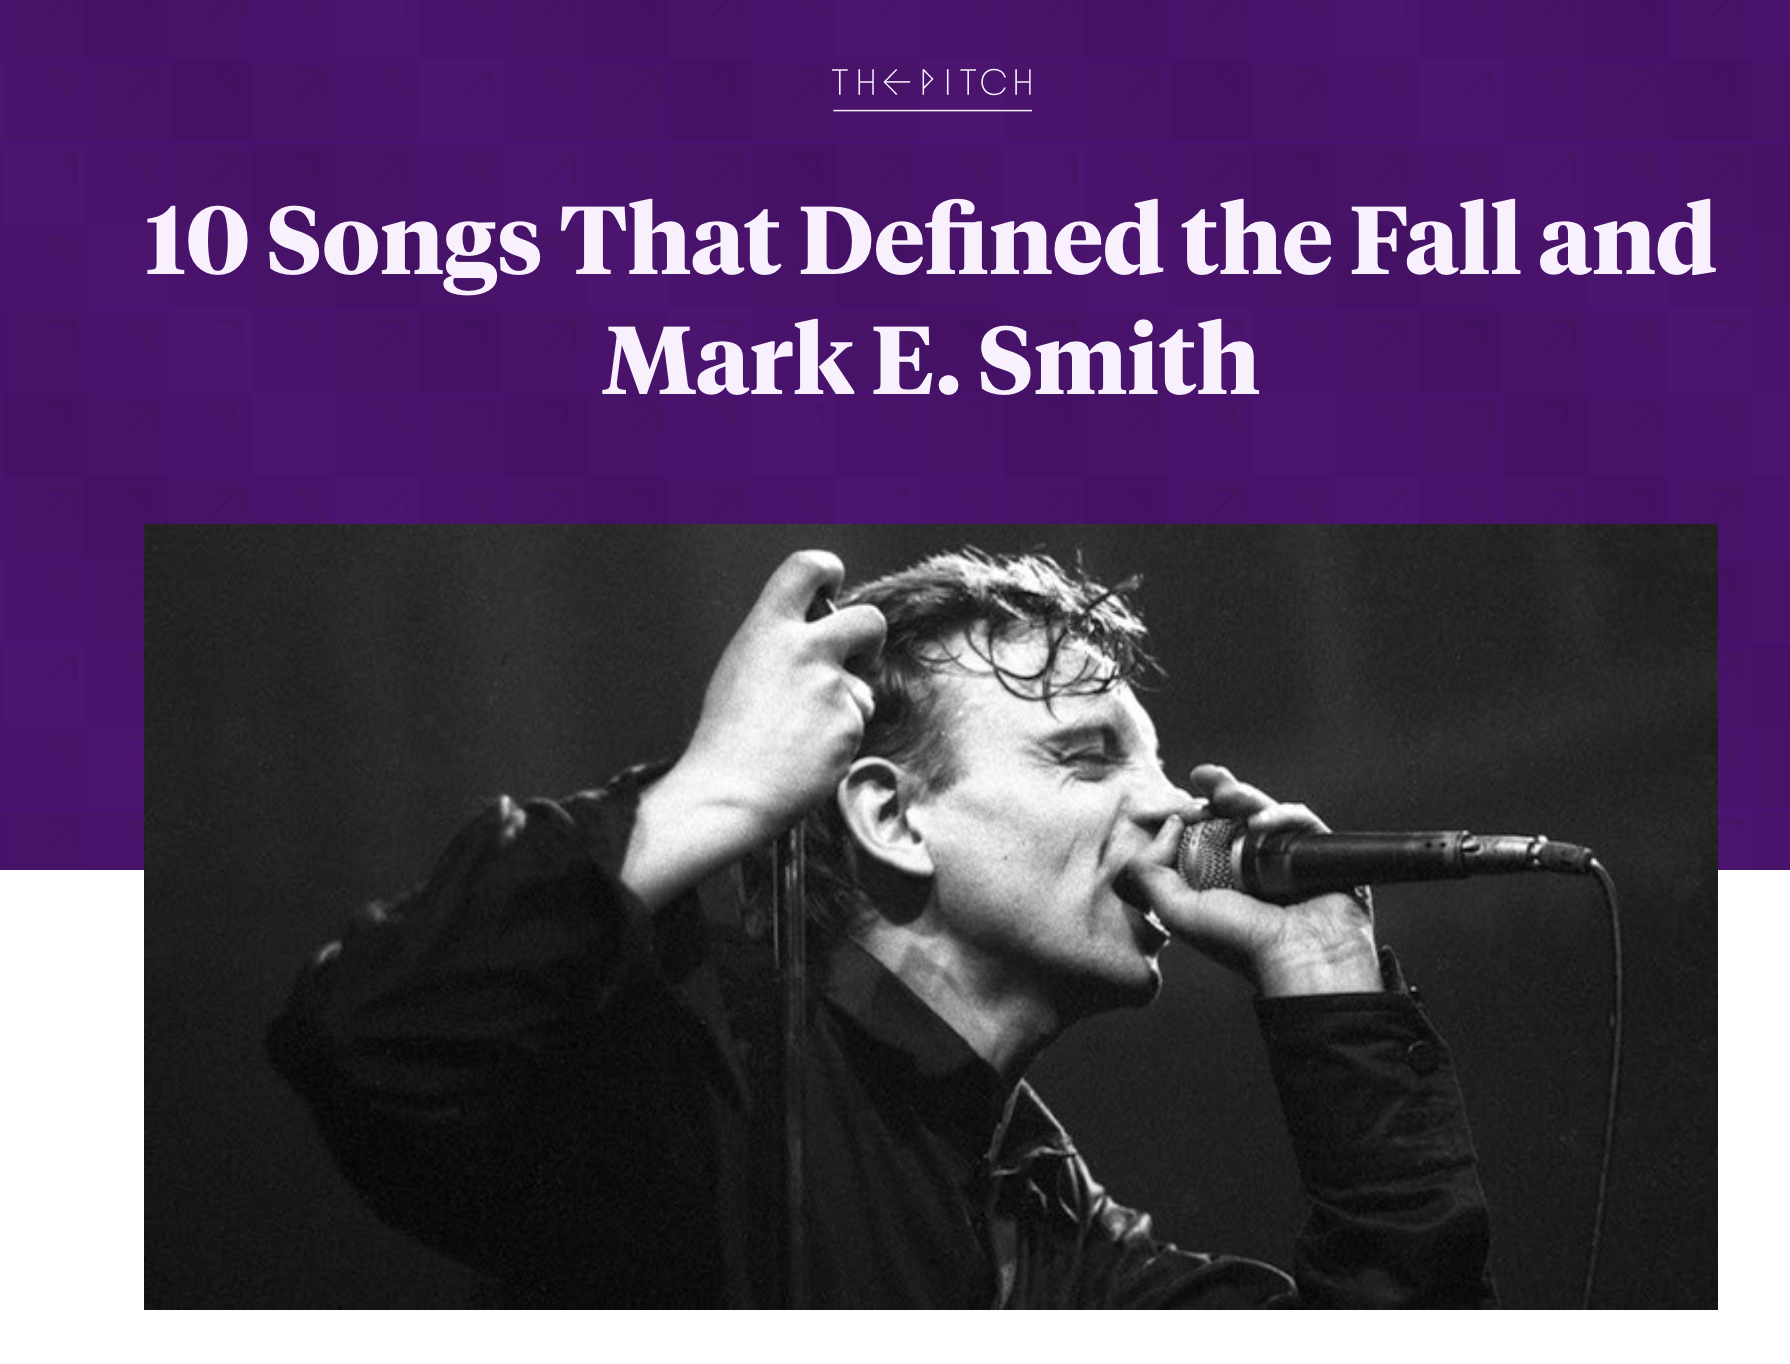 10 Songs That Defined the Fall and Mark E. Smith